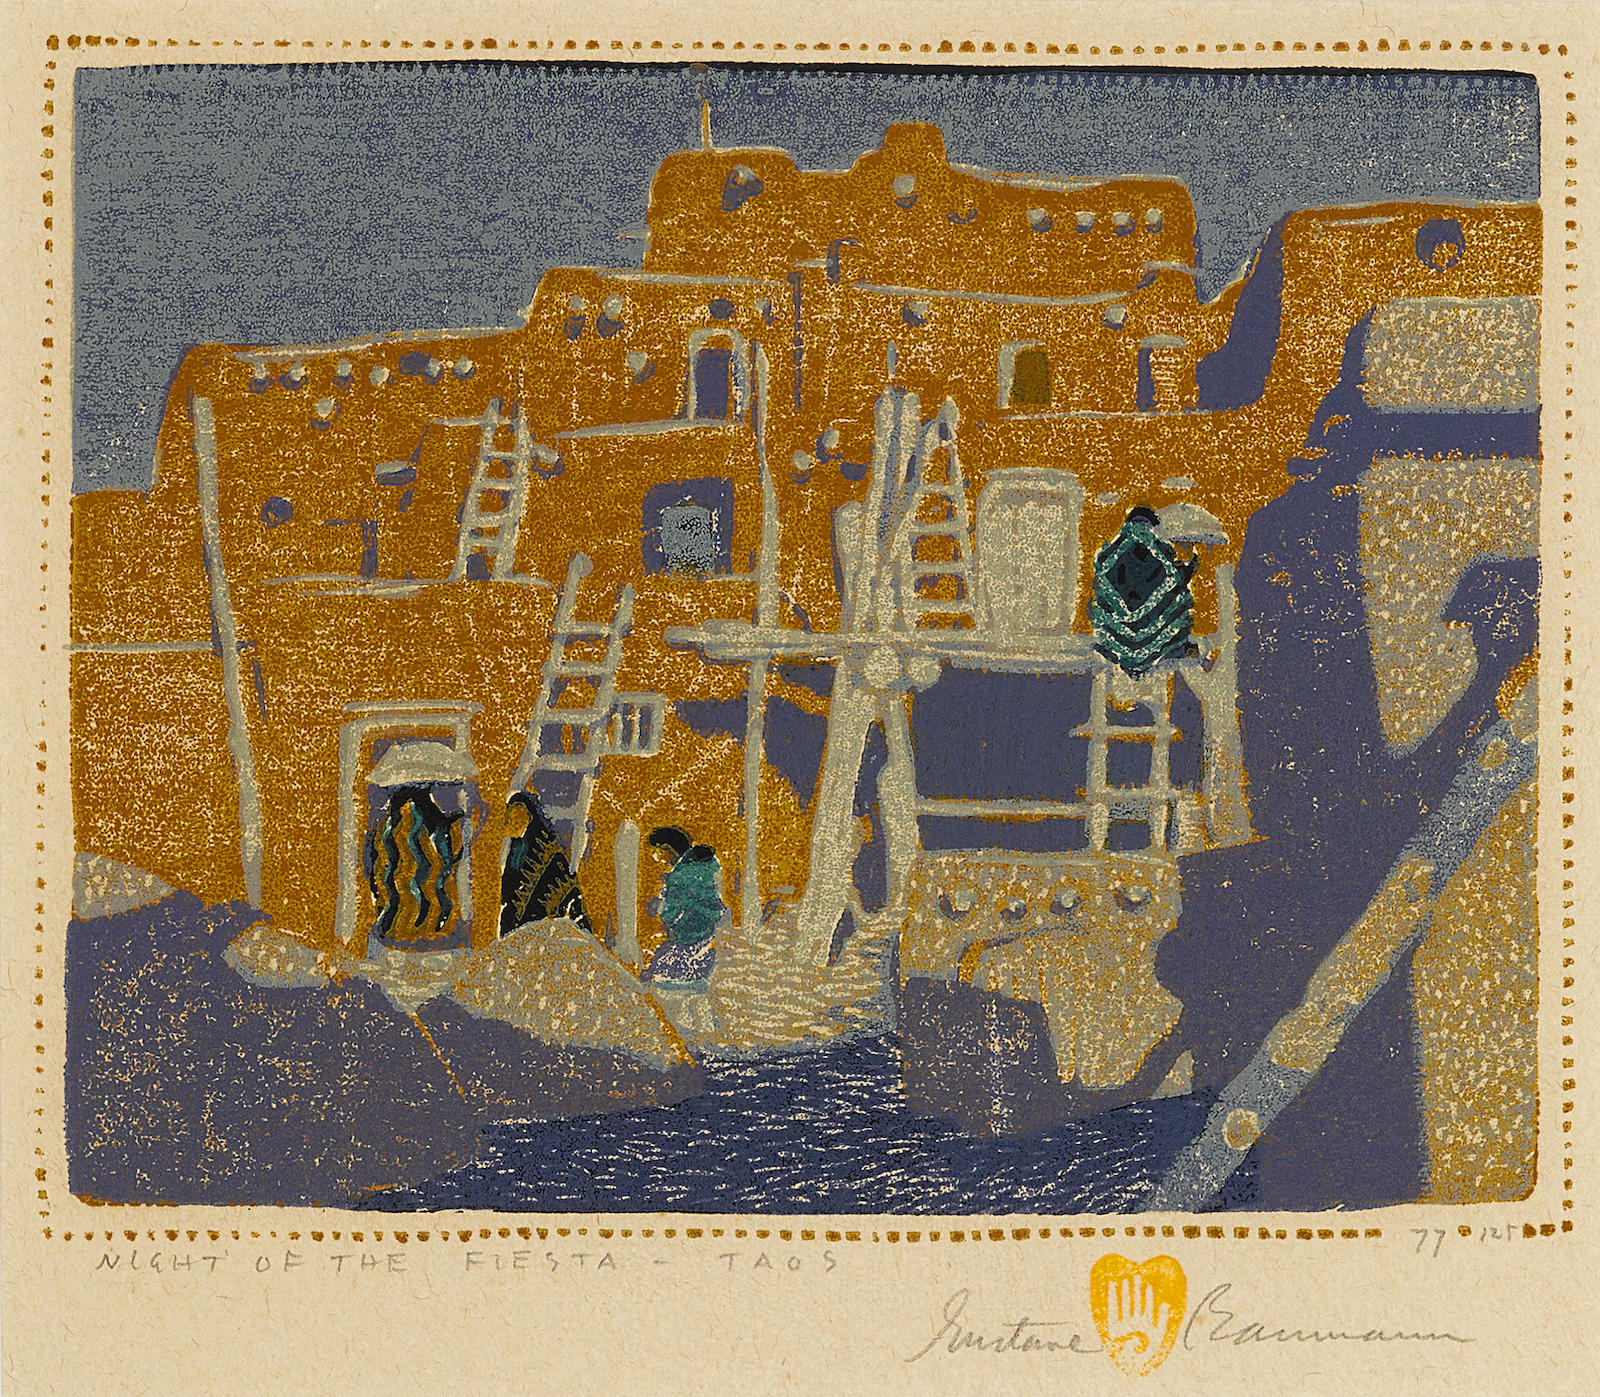 Gustave Baumann-Night of the Fiesta - Taos (not in Acton)-1926